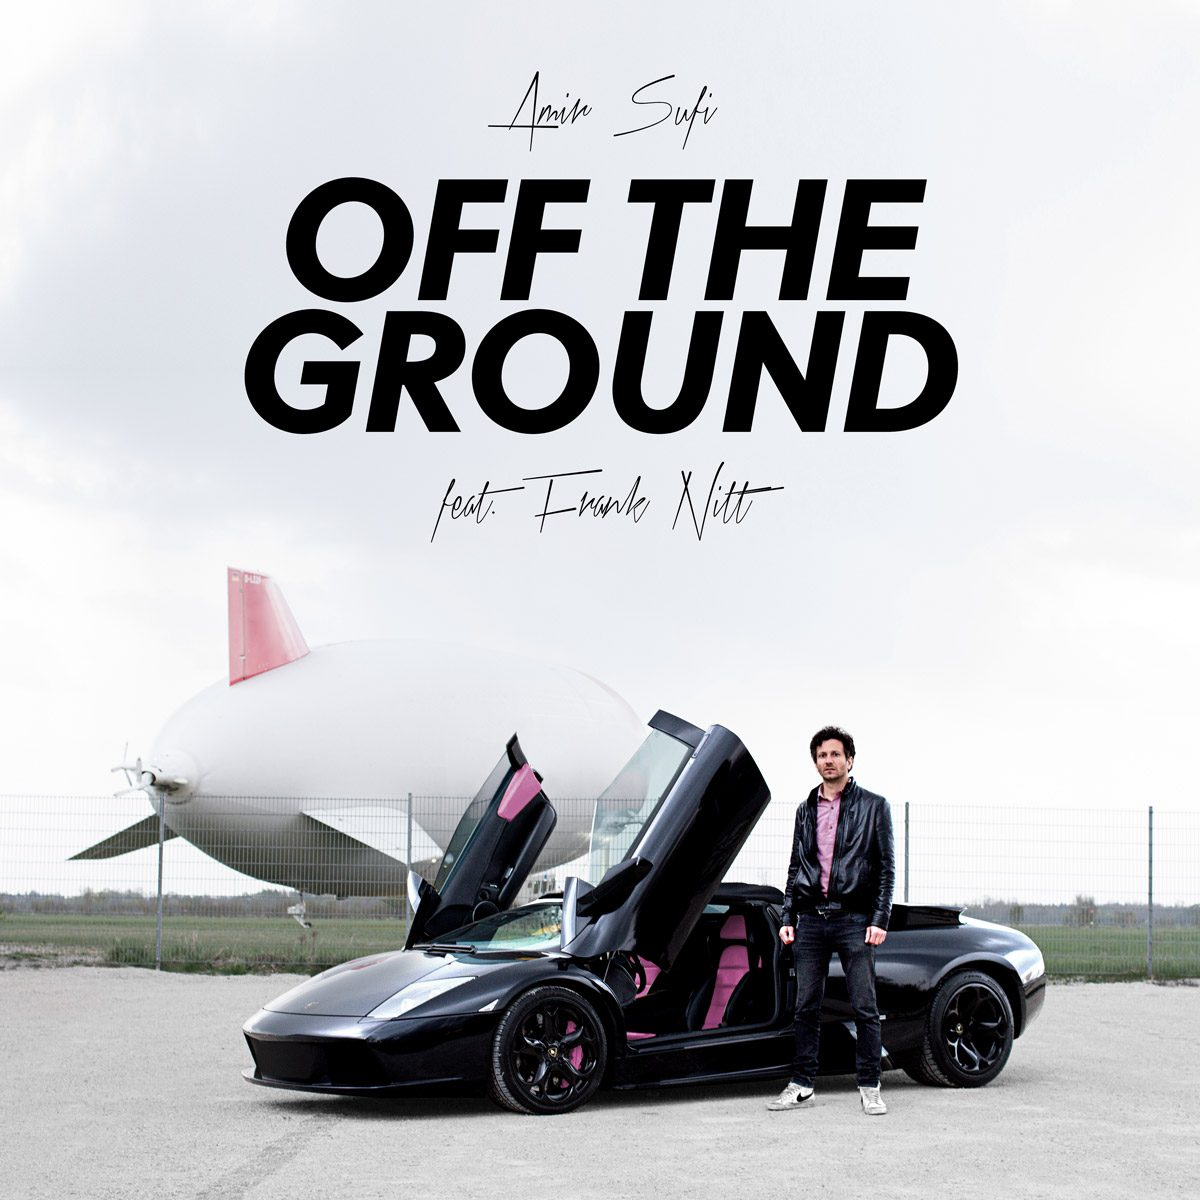 Amir Sufi - Off the Ground